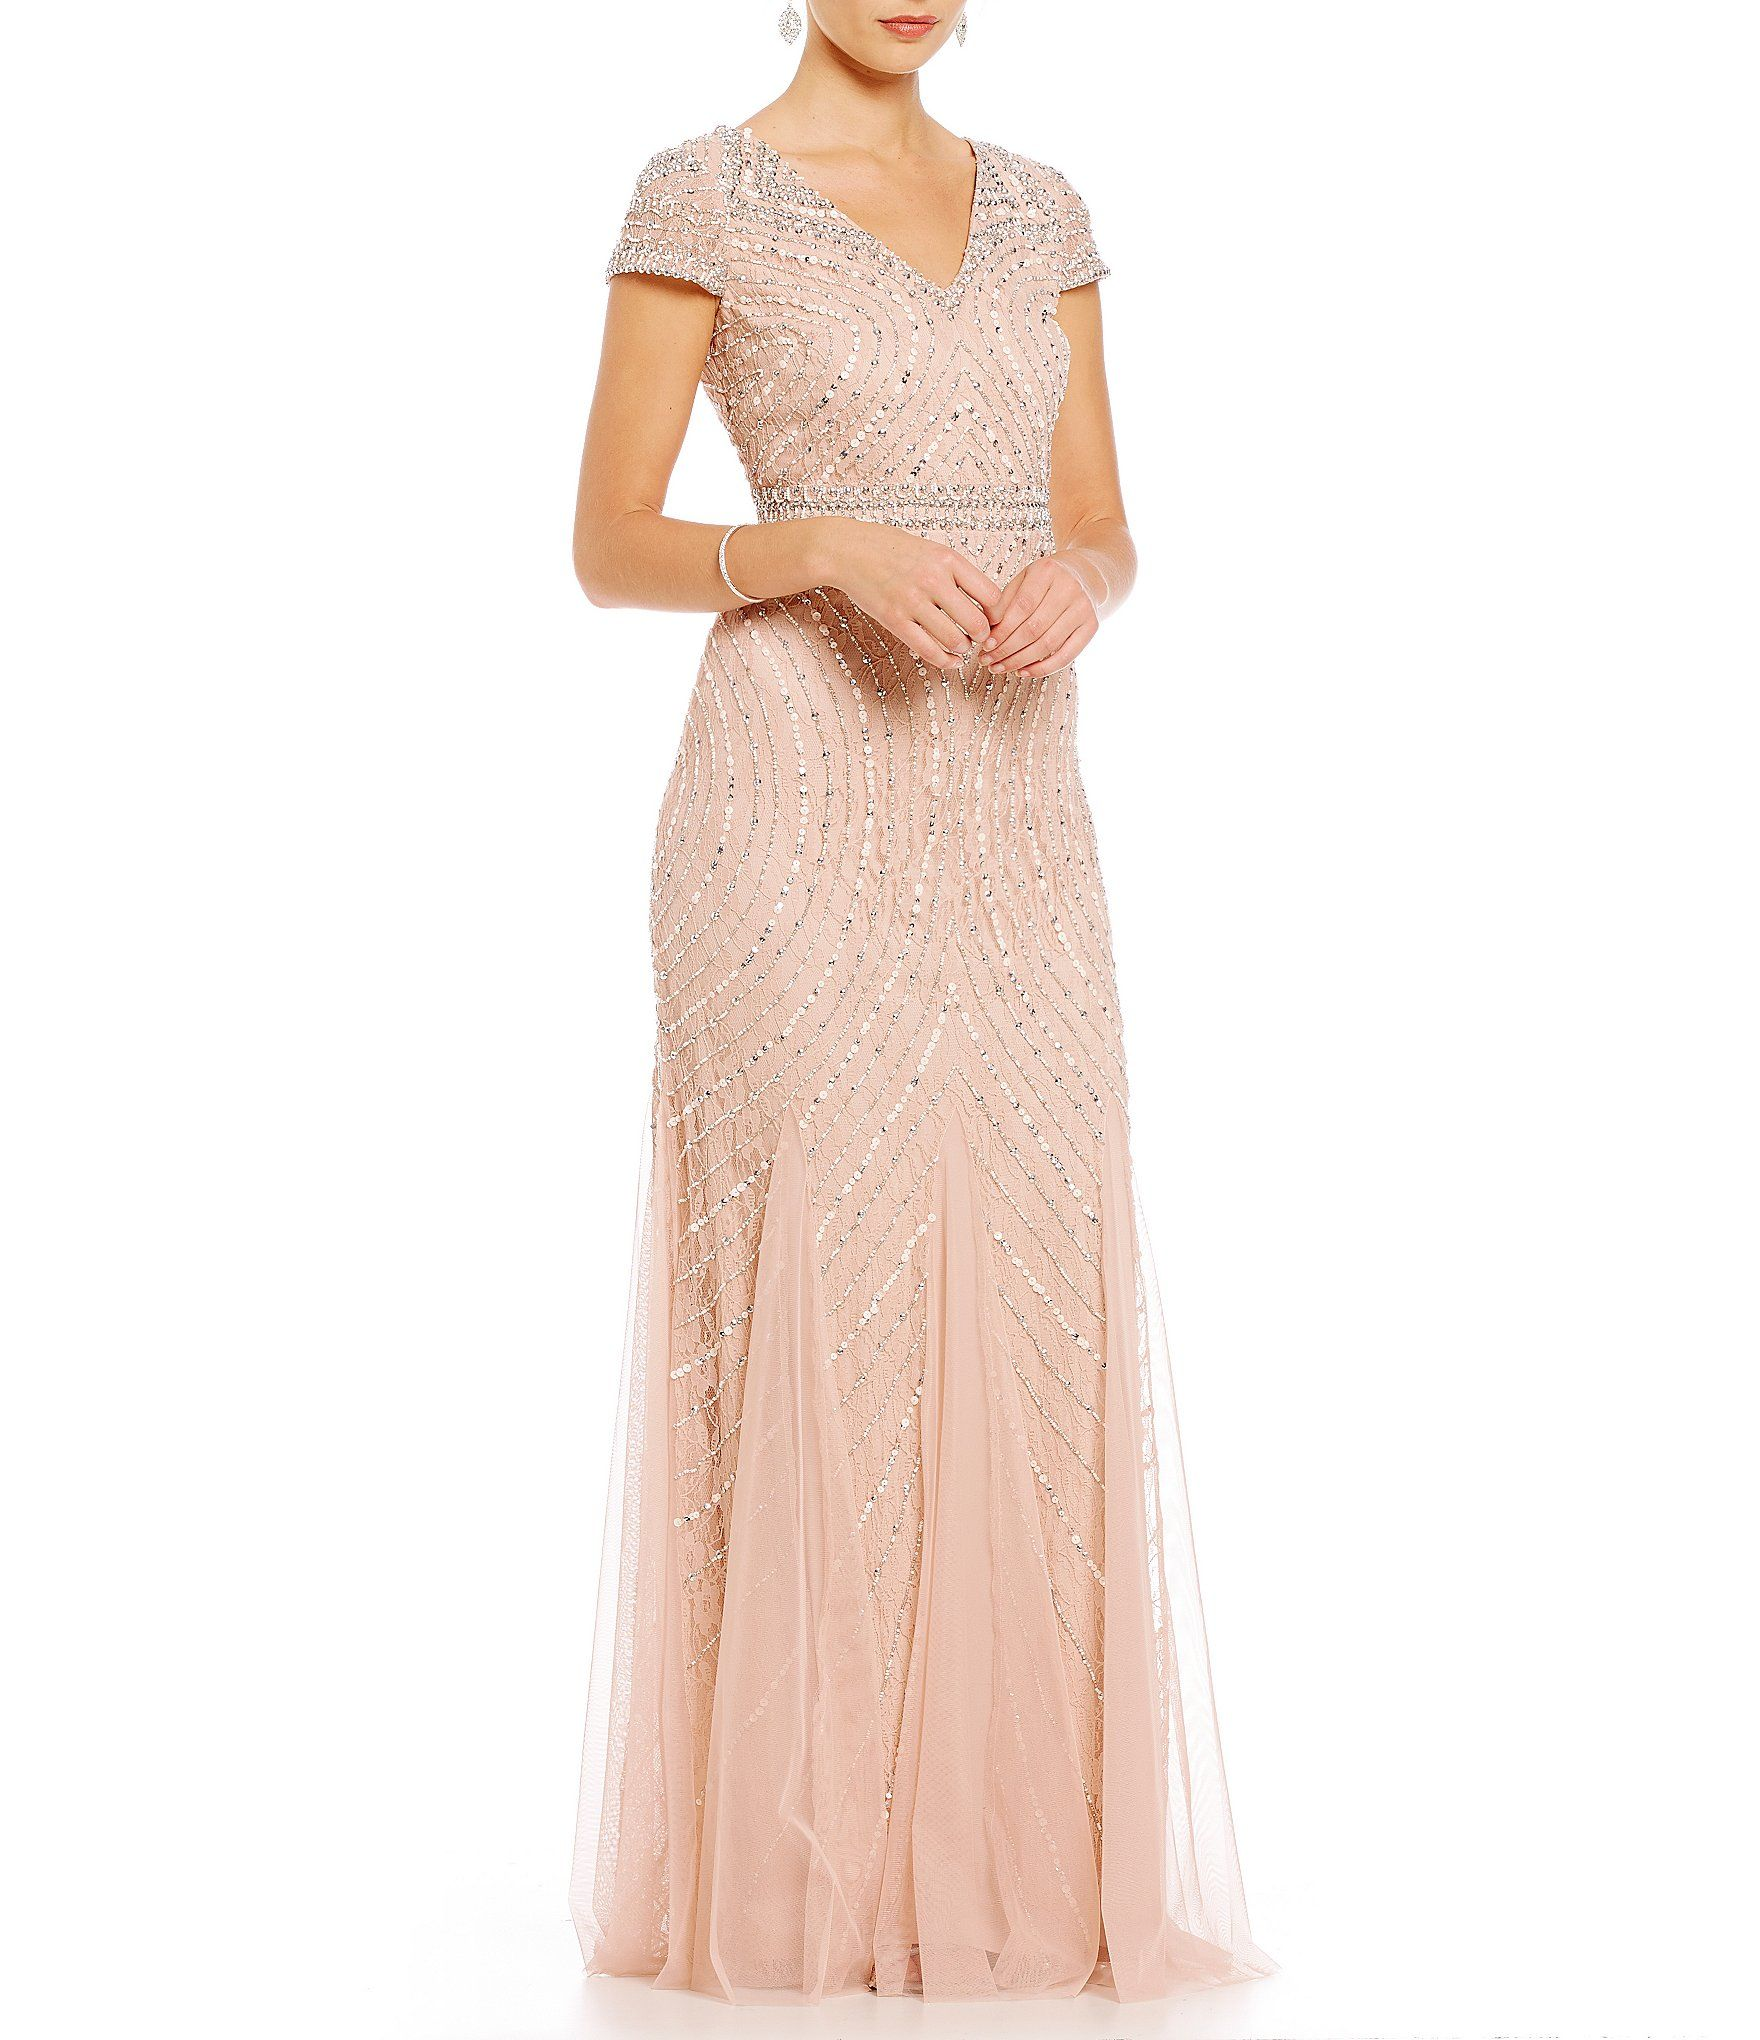 4616d1cf96 Shop for Adrianna Papell Sequin and Beaded Lace V-Neck Gown at  Dillards.com. Visit Dillards.com to find clothing, accessories, shoes,  cosmetics & more.